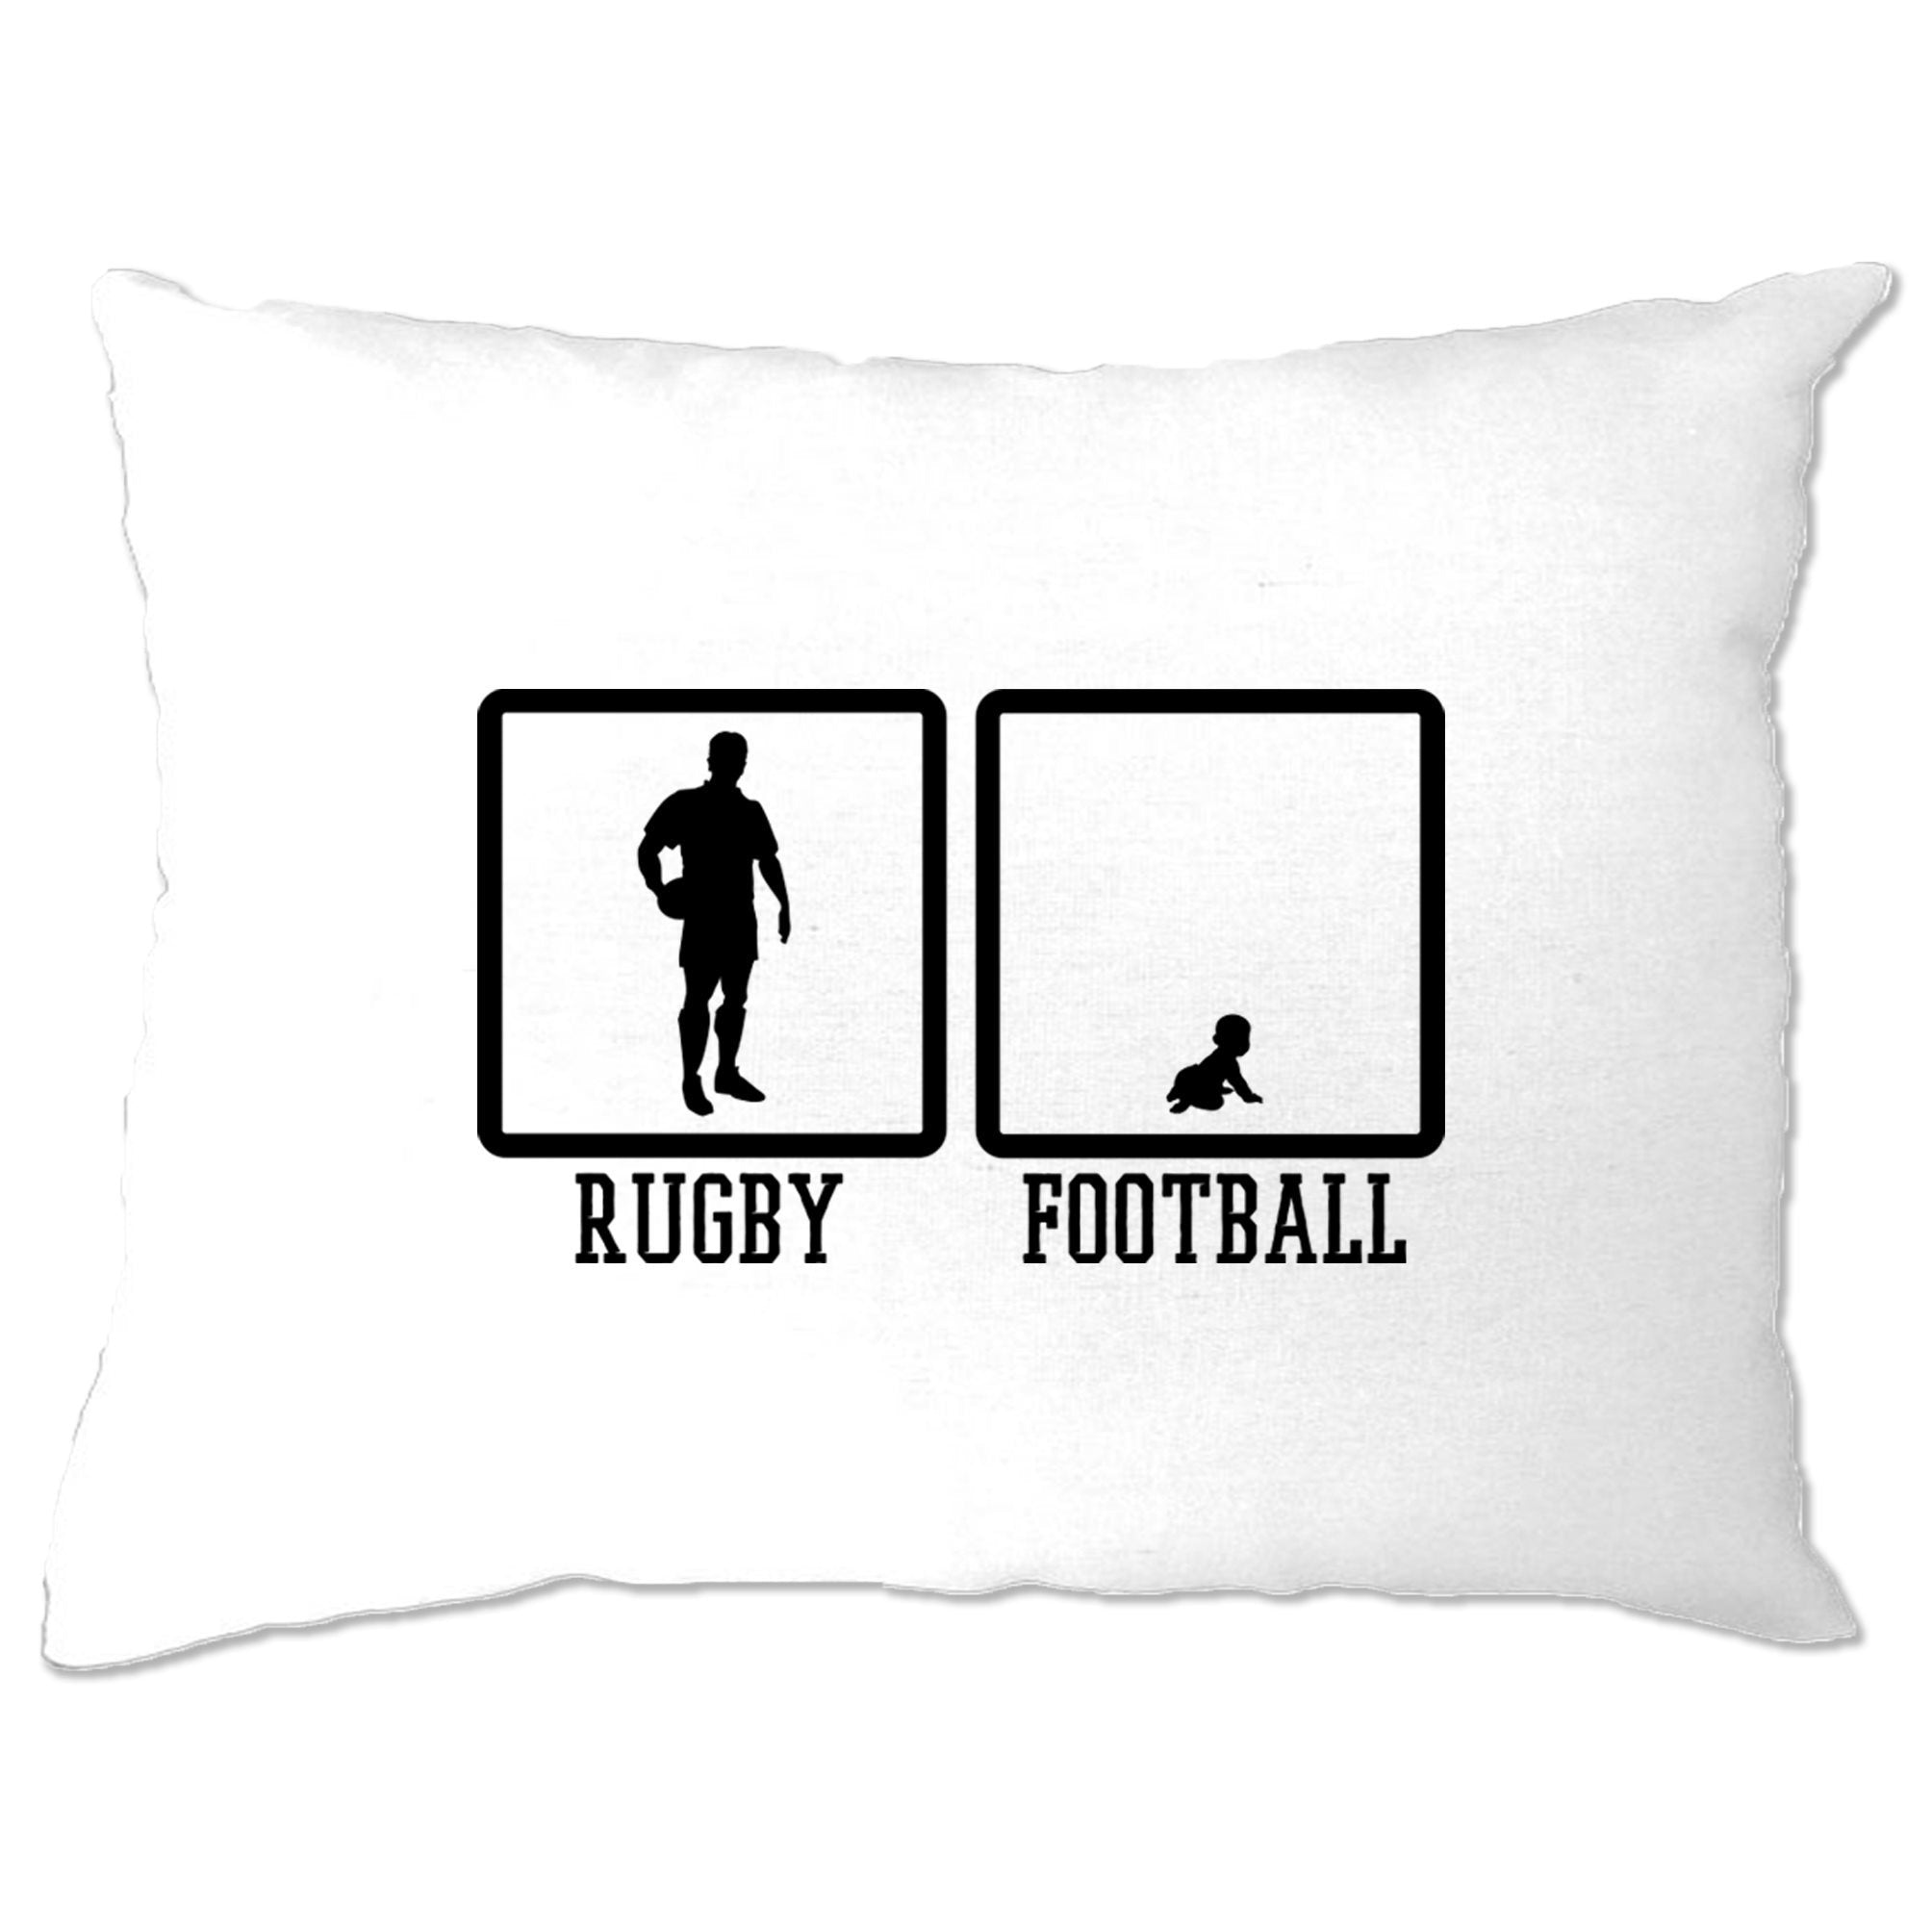 Joke Sports Pillow Case Rugby Vs Football Baby Novelty